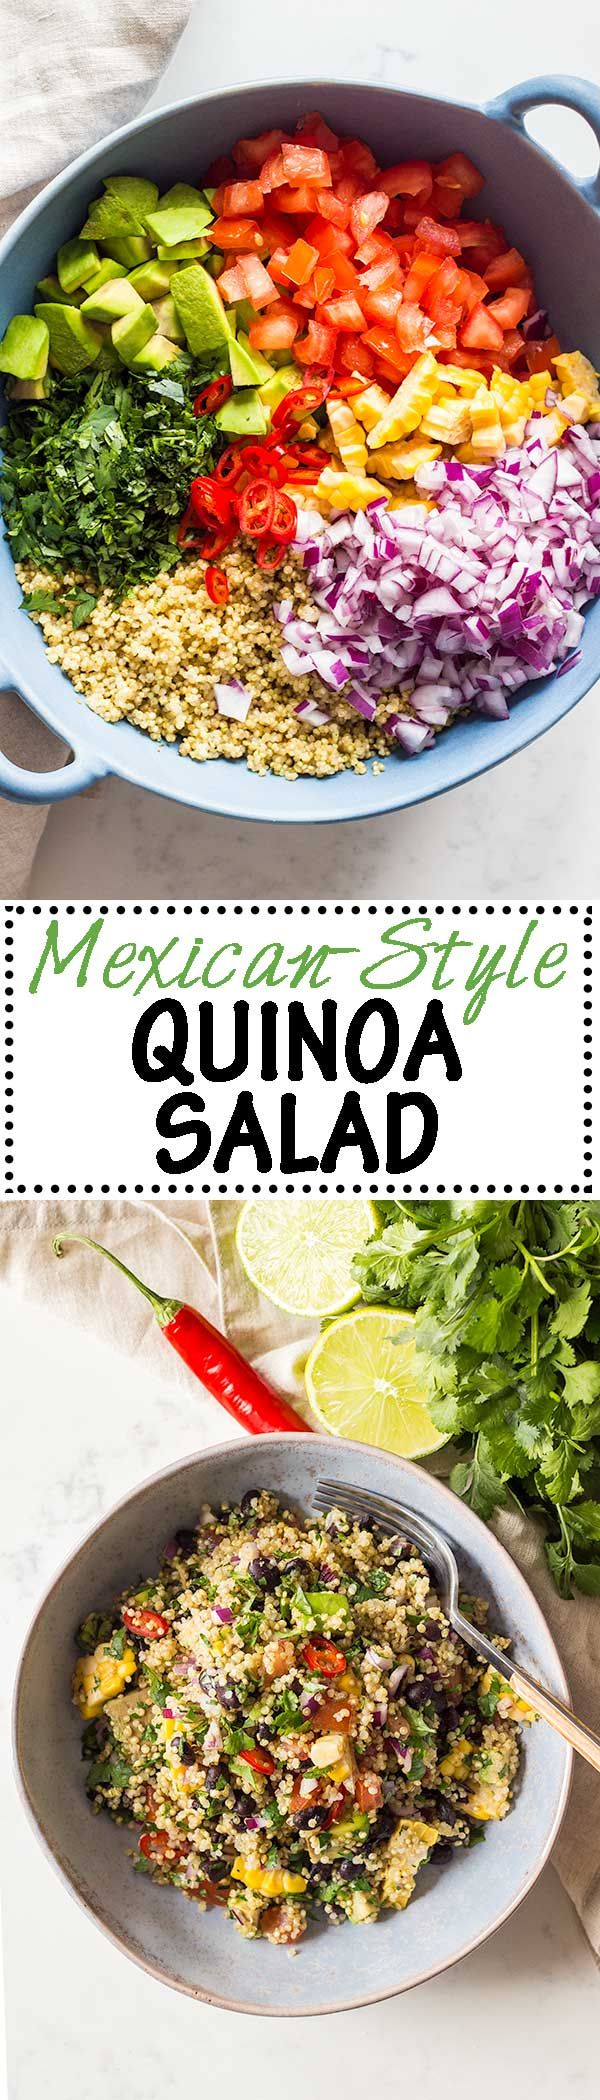 The most delicious Mexican Quinoa Salad of all times. Healthy avocado, black beans, a boat load of cilantro and a little heat make this Mexican quinoa recipe more than complete. #quinoa #mexican via @greenhealthycoo